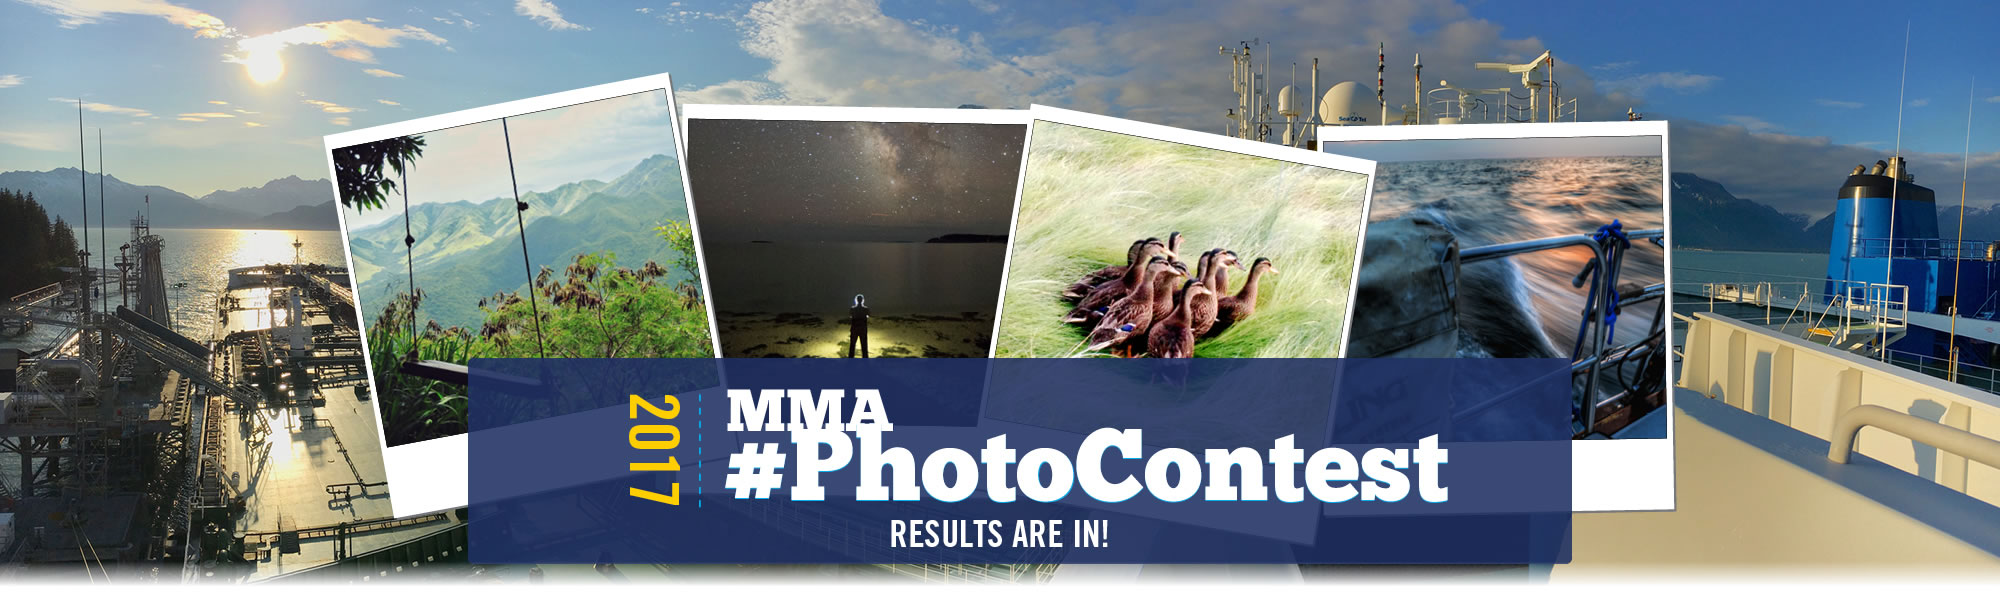 2017 Photo Contest Results